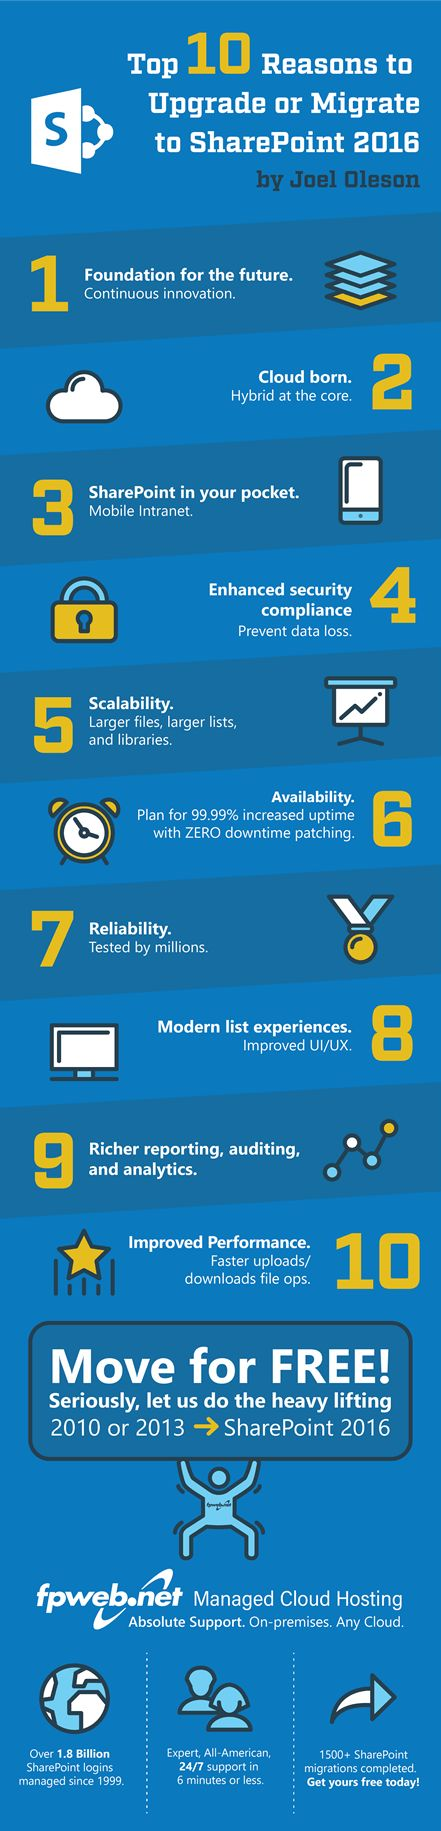 SharePoint 2016 Why Upgrade? Top 10 Reasons to Upgrade or Migrate www.hydra.pt #microsoft #sharepoint